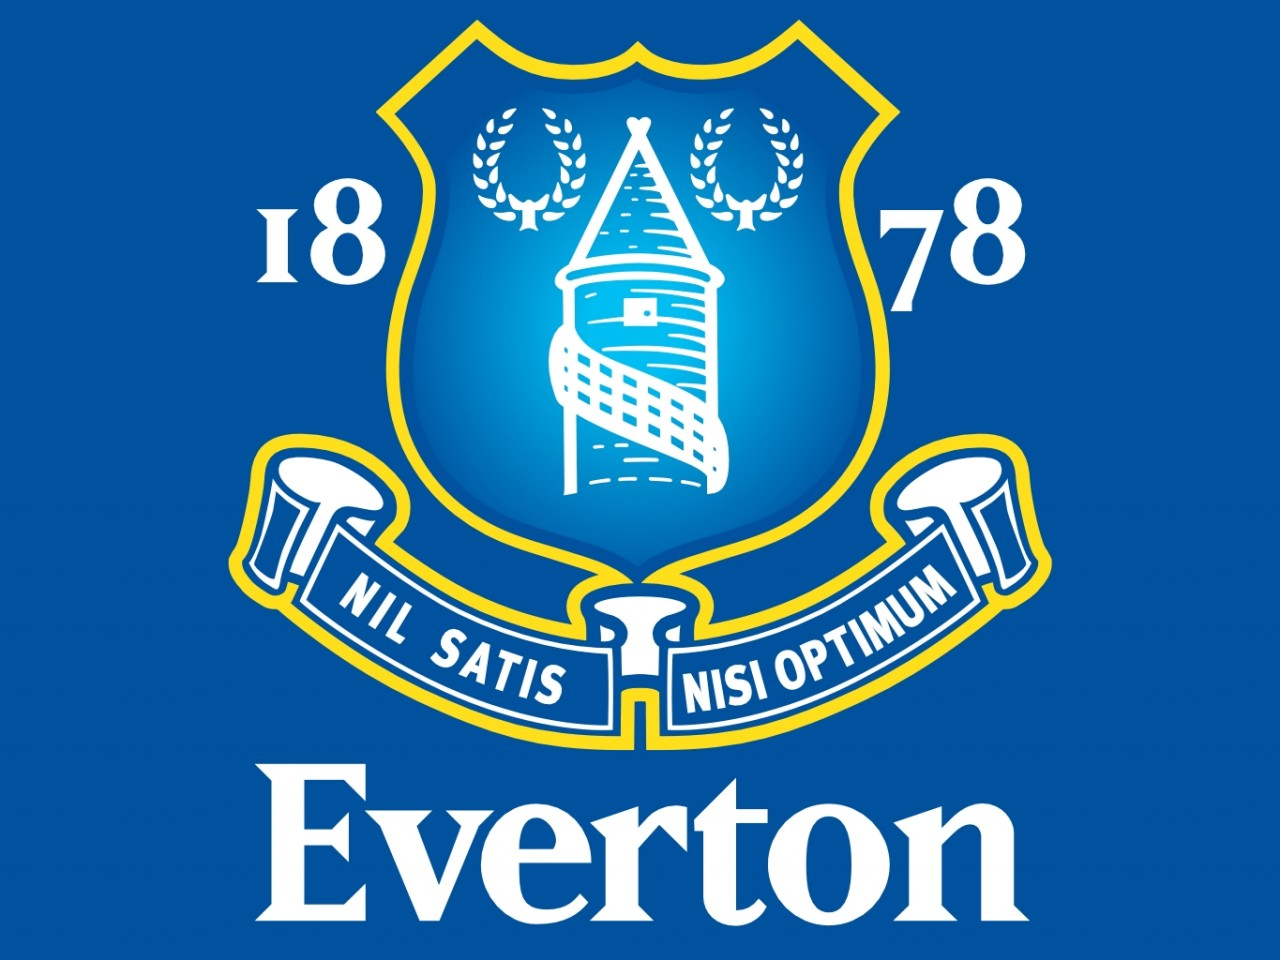 Everton Football Club takes fans behind the scenes with